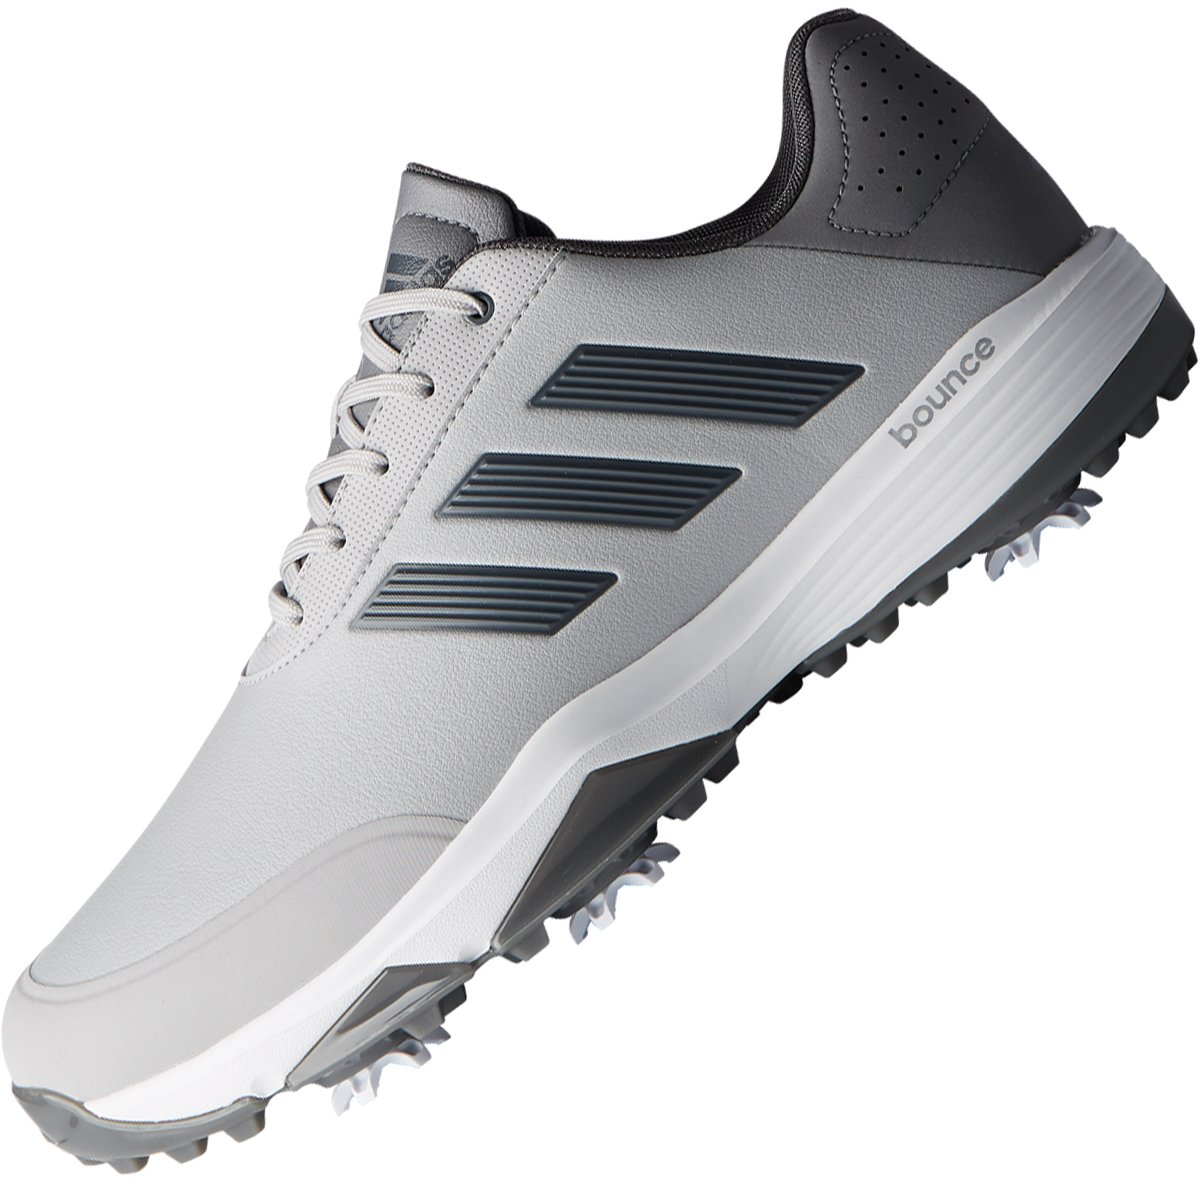 d081babb61b9 adidas Men s Adipower Bounce Wd Golf Shoes  Amazon.co.uk  Shoes   Bags